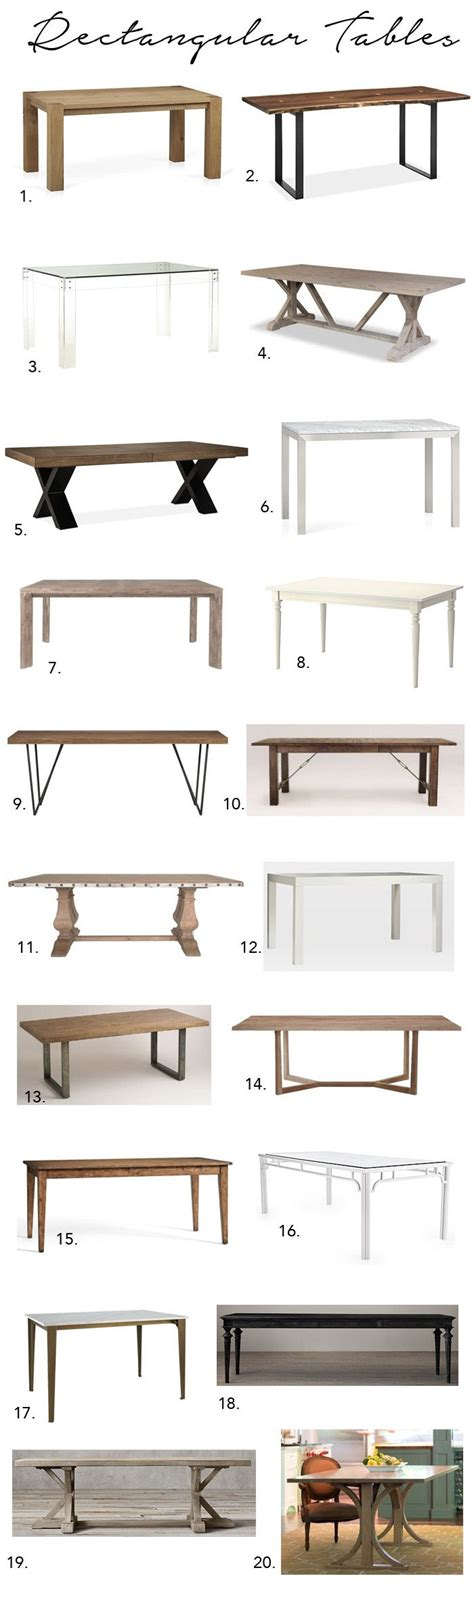 styles of dining tables 25 best ideas about dining tables on pinterest farmhouse dining room table diy dinning room